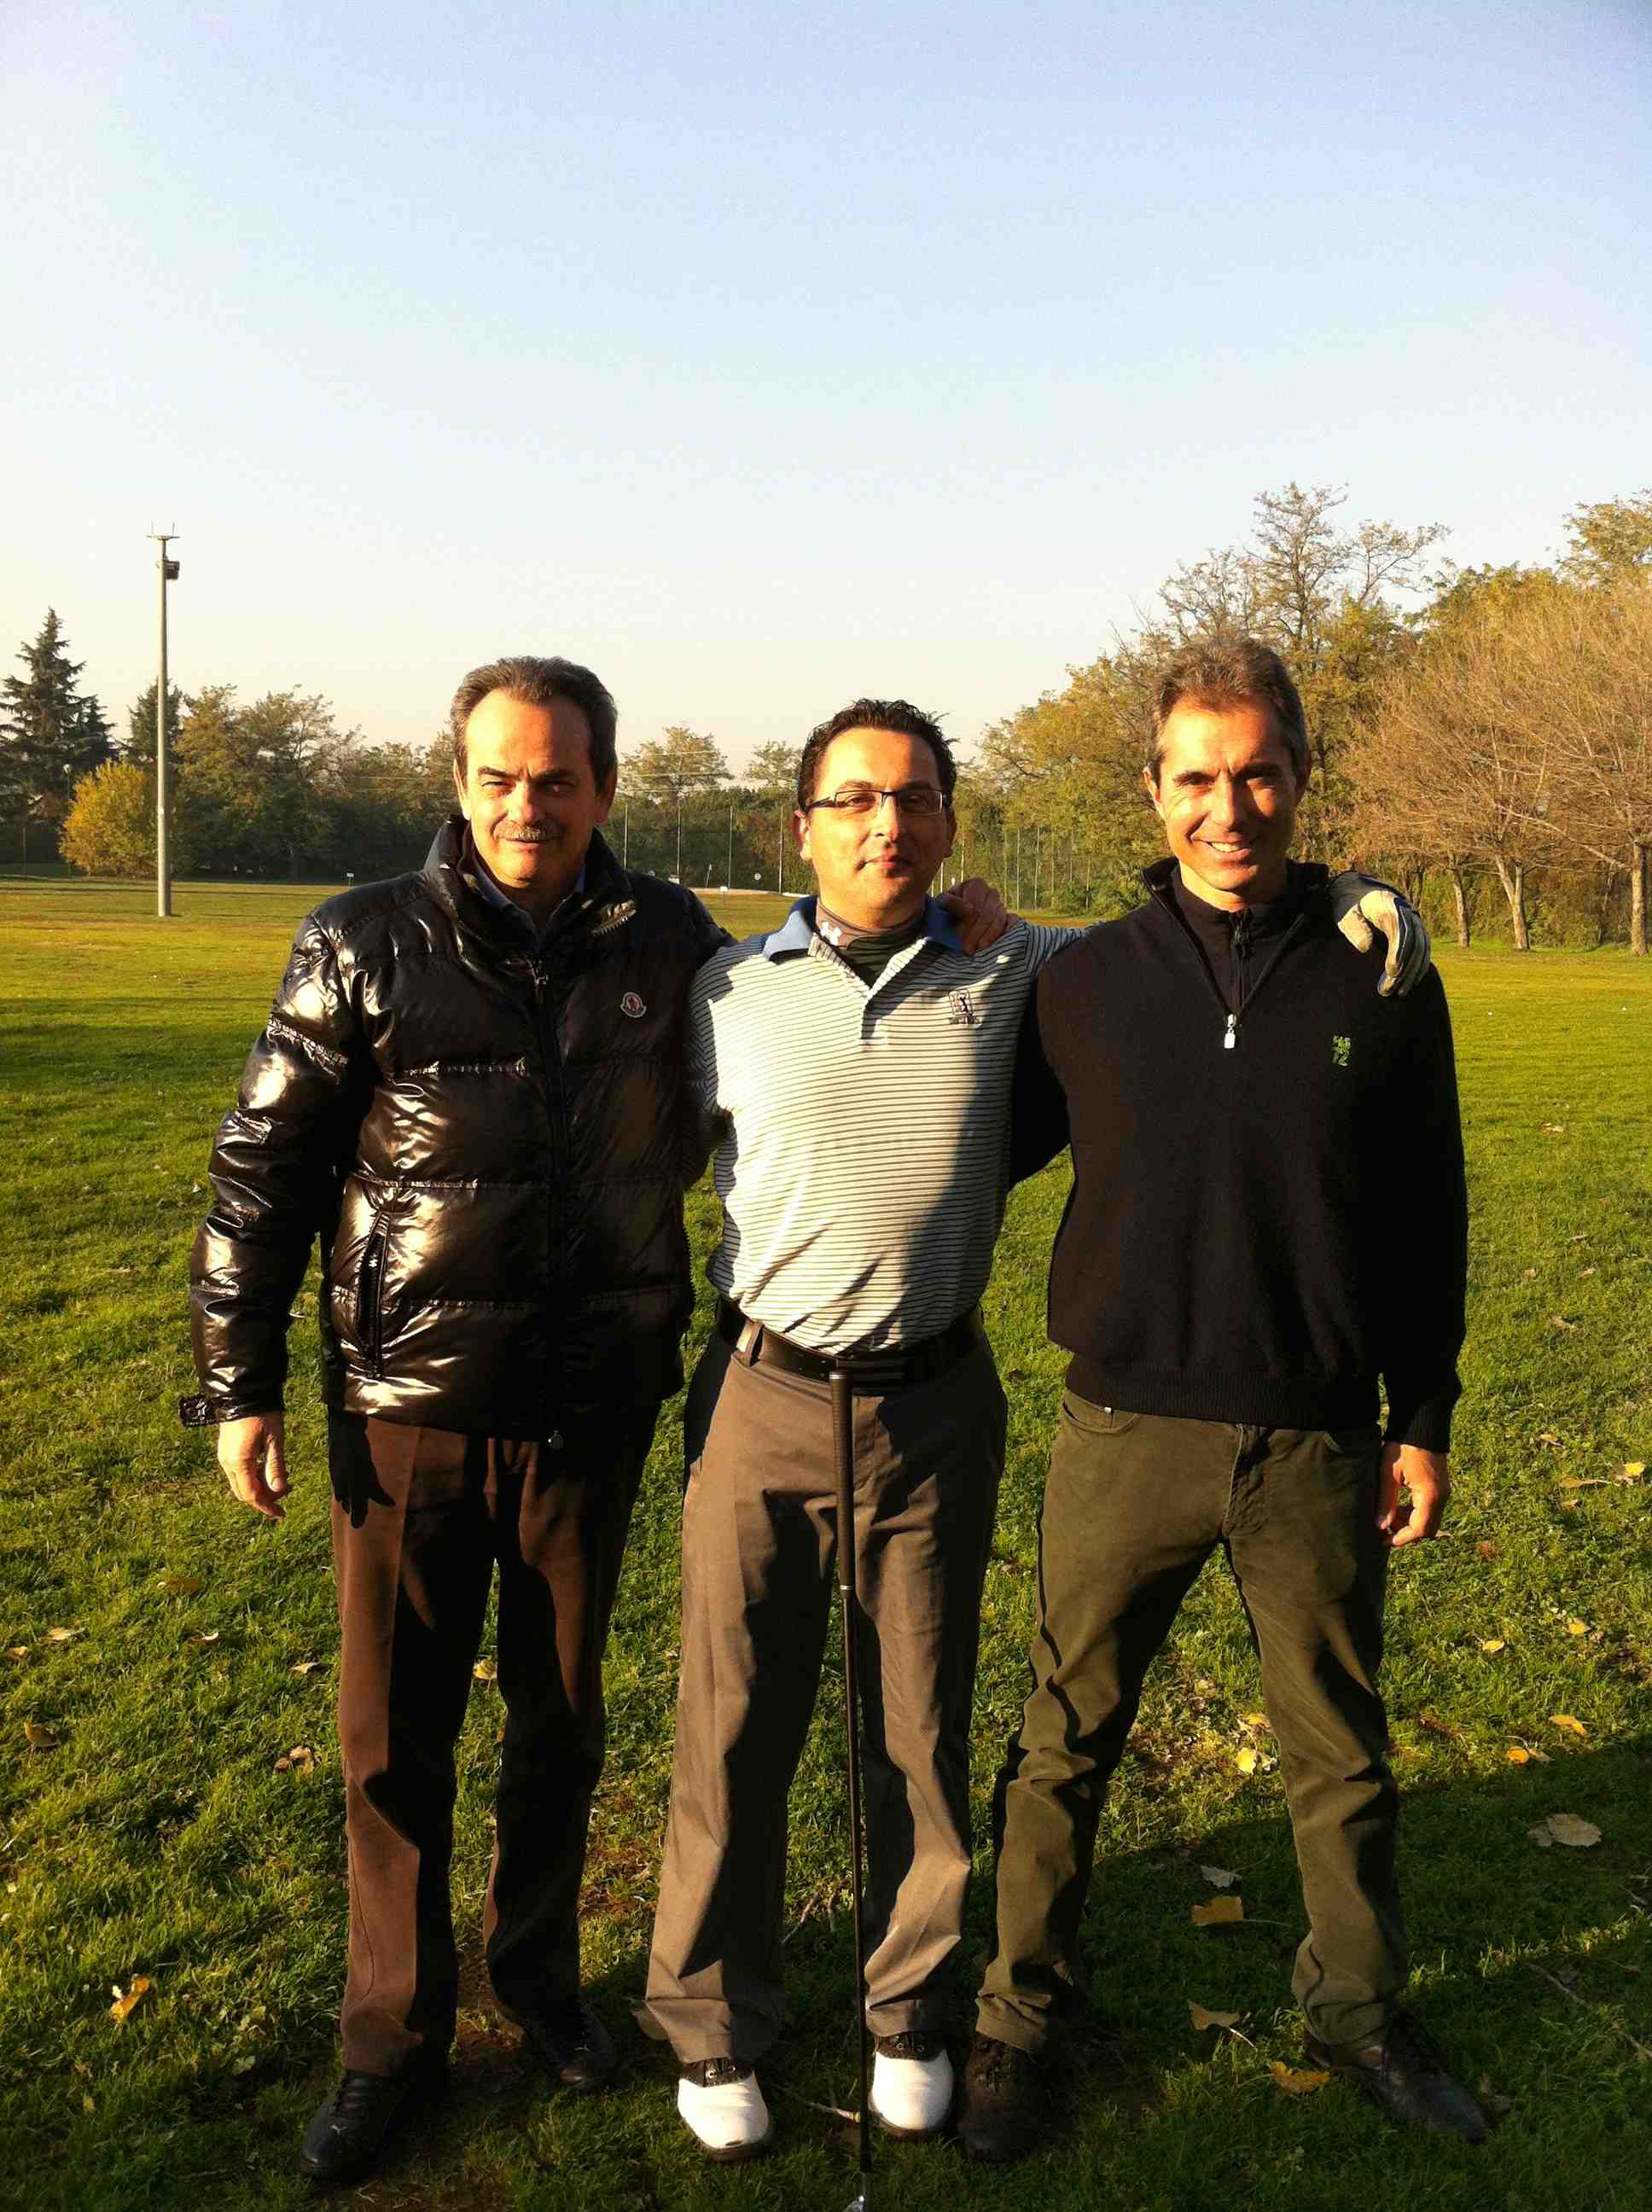 Con Gianmarco Coce maestro di Golf a Lainate con Angelo Ardissone al Golf Green Club di Lainate